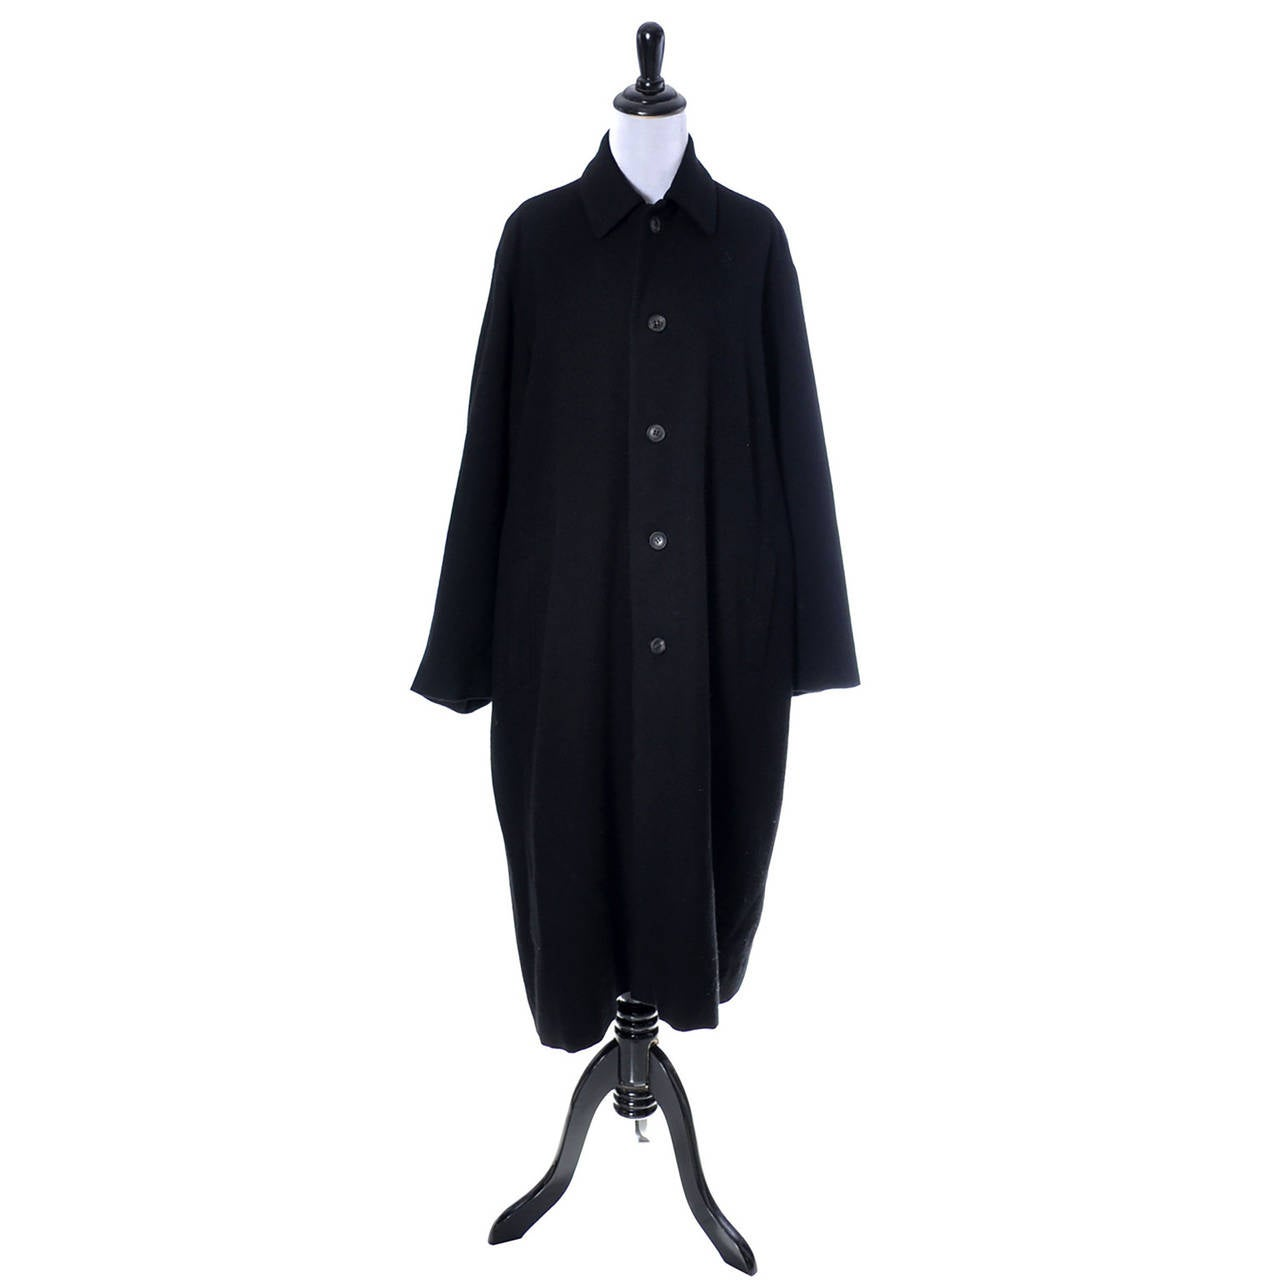 This is a late 1980's or early 1990's black wool coat from Yohji Yamamoto.  This beautiful coat is almost a cocoon style with buttons up the front and oversized fit.  There is a back center slit at the bottom, and the coat is in as new condition.